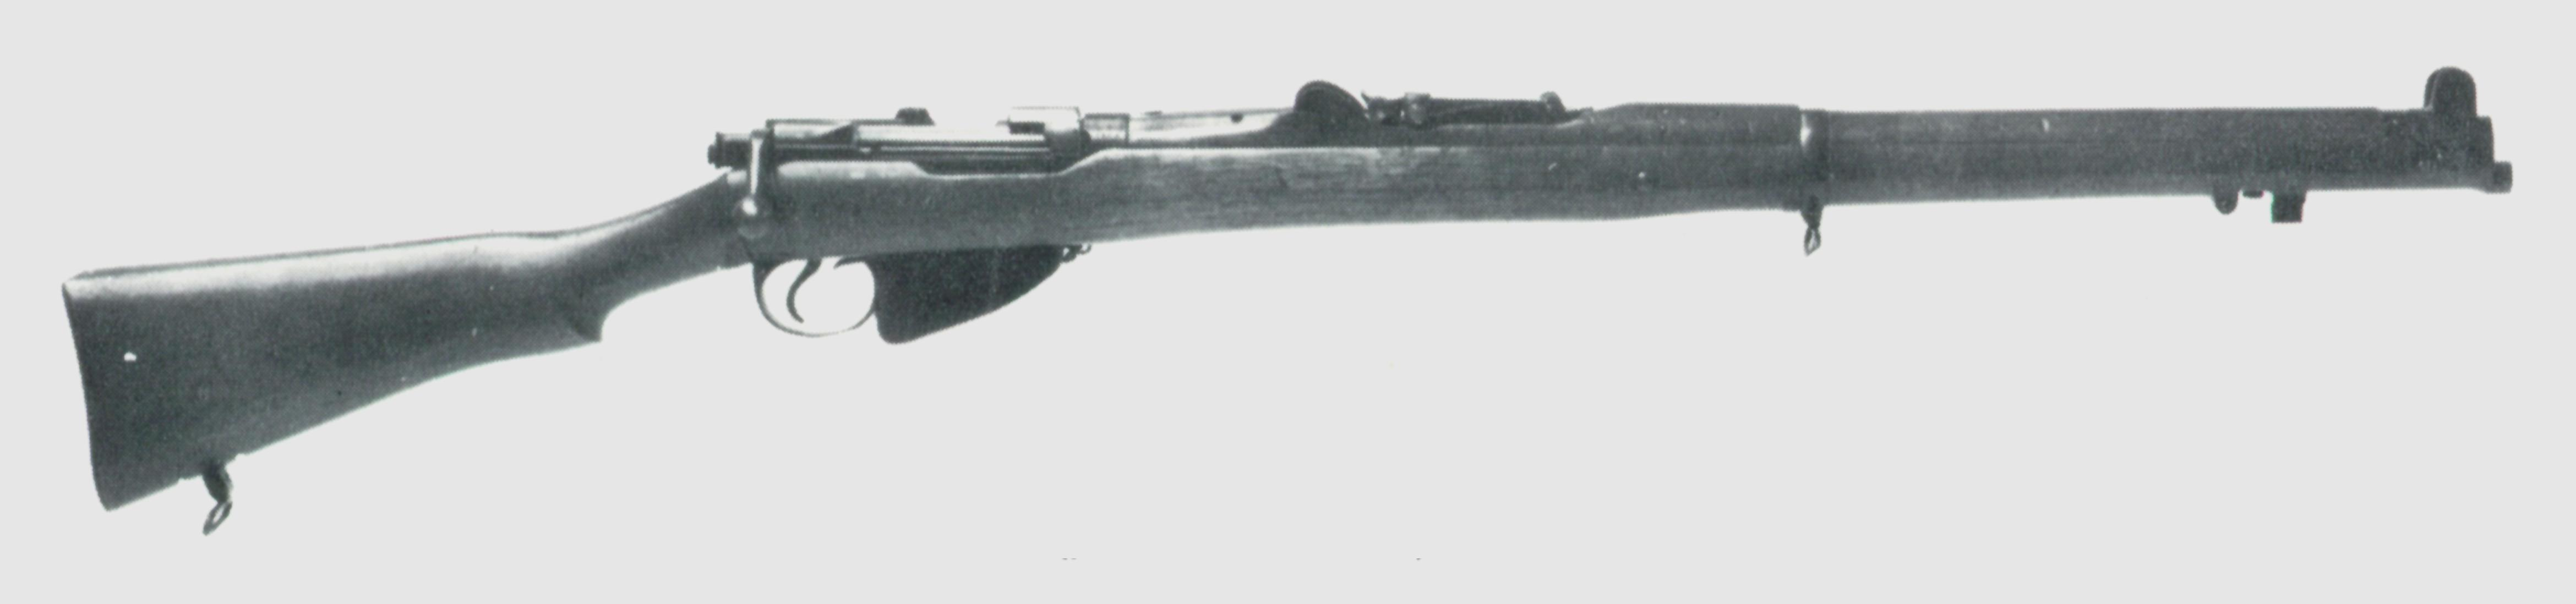 Short Magazine Lee Enfield Mark I* (SMLE)